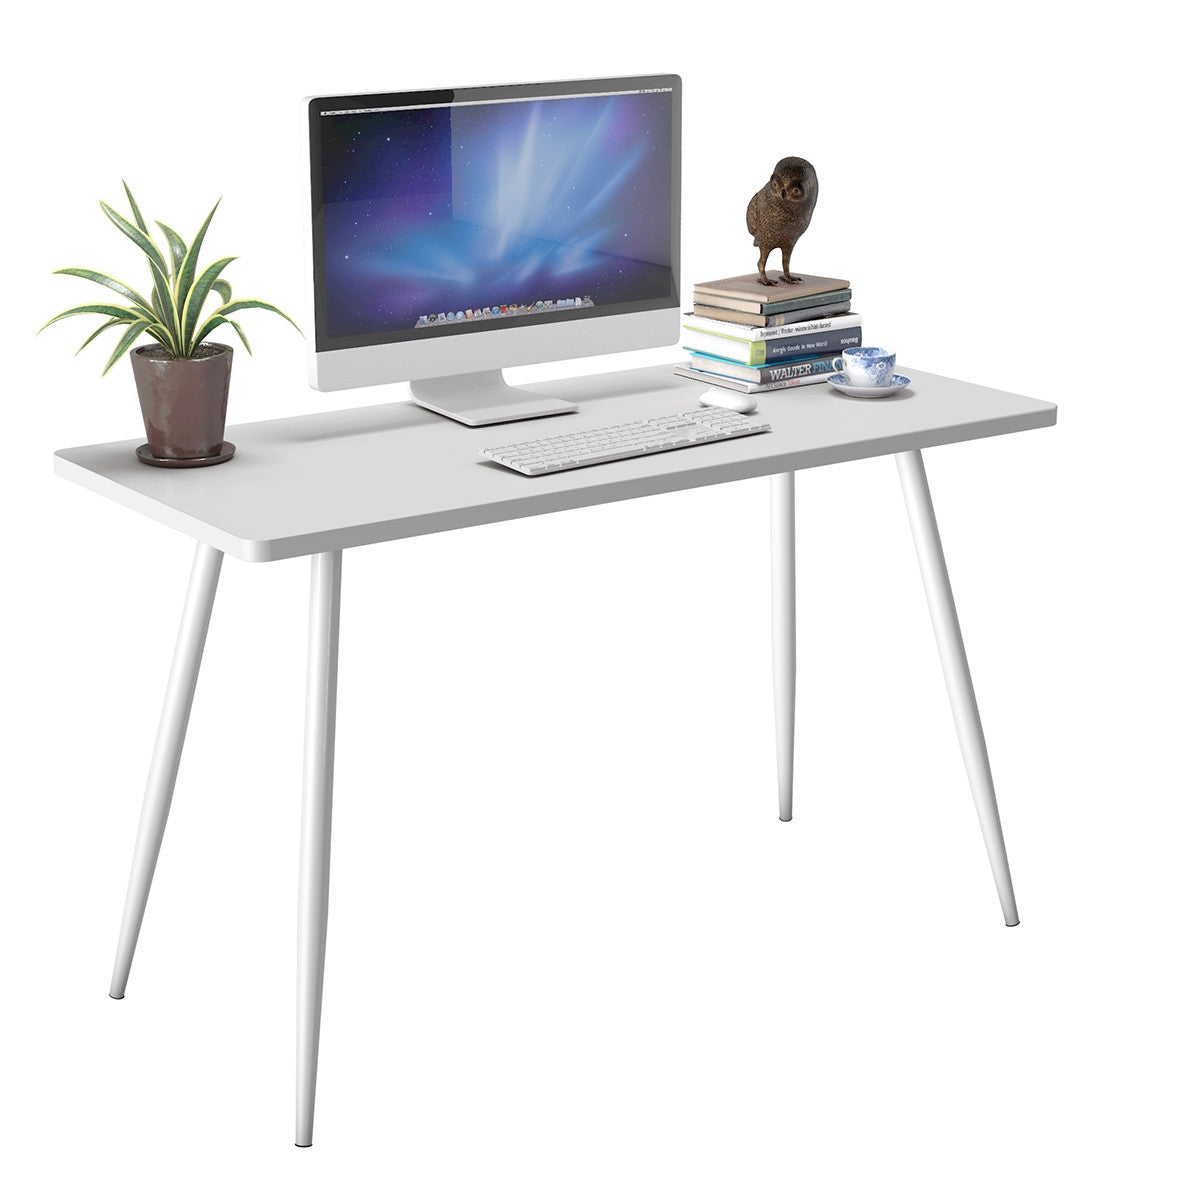 writing desk small white table modern stylish simple